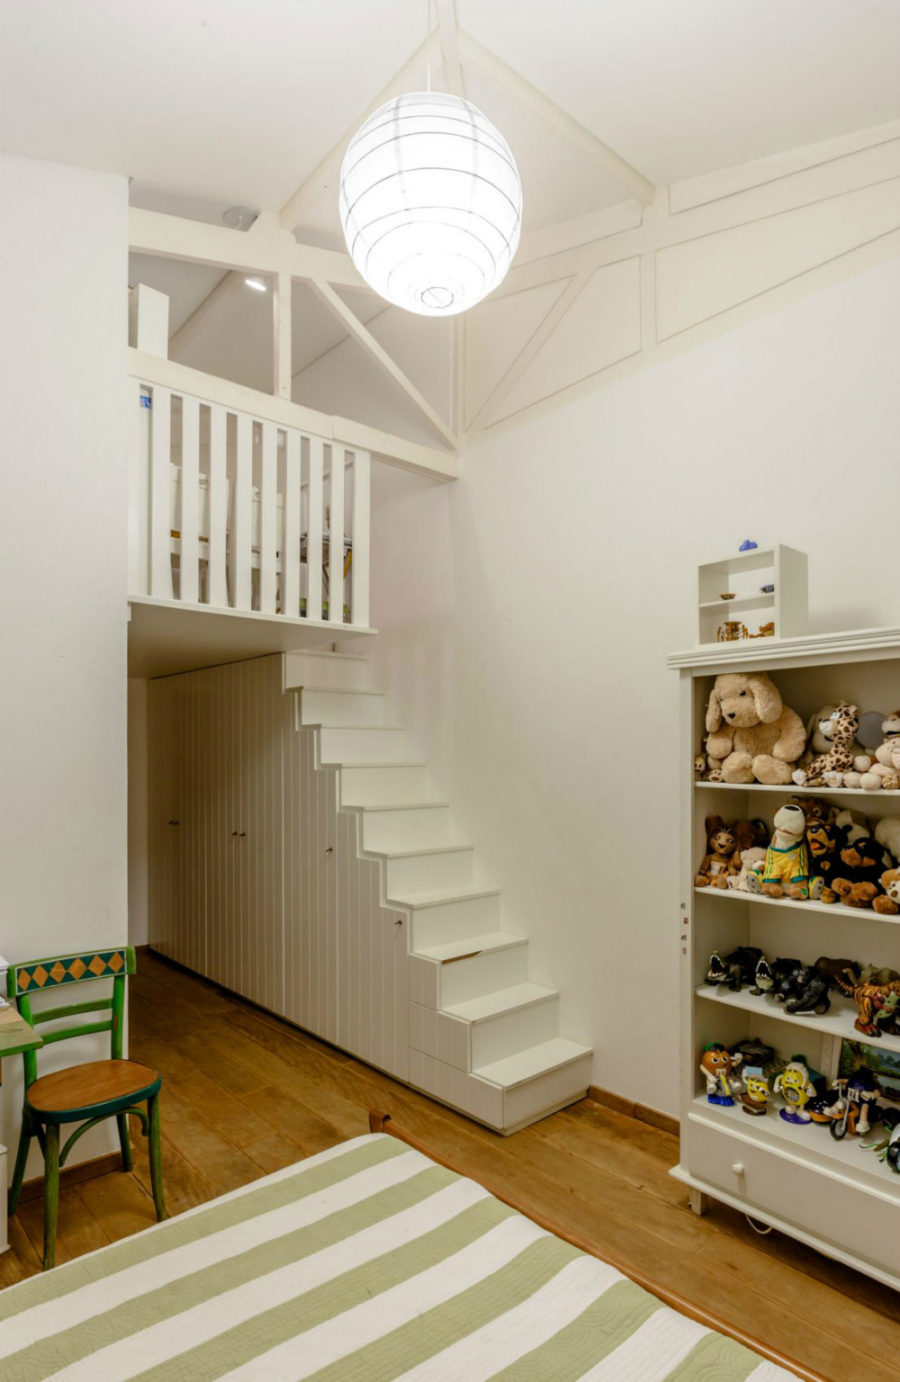 Kid's room with a loft